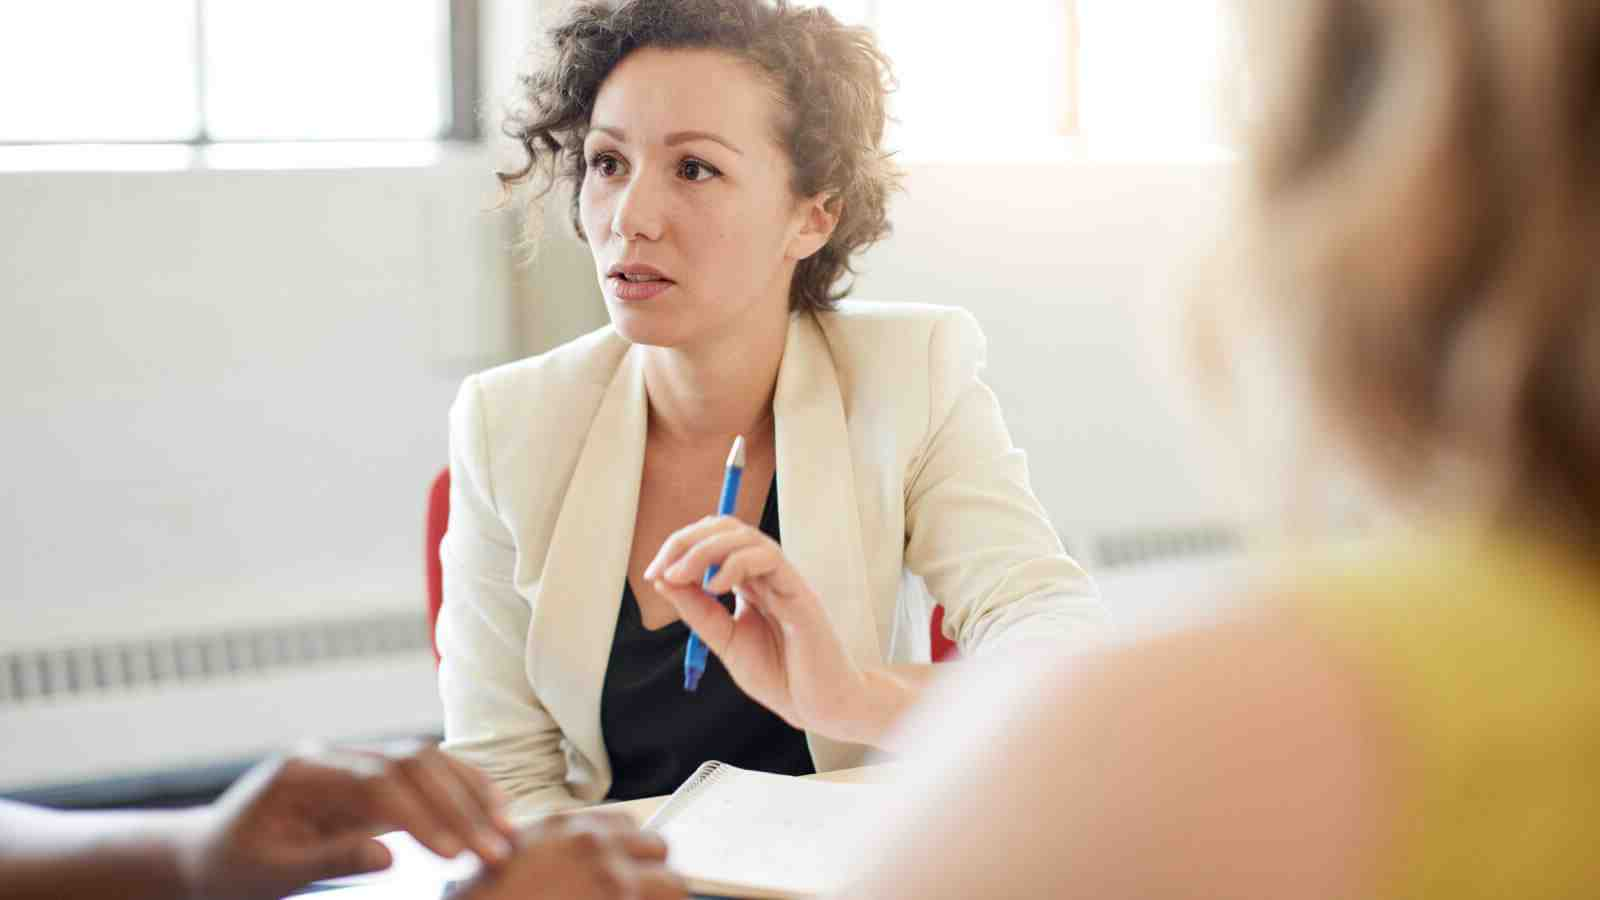 What should I ask during job interview?